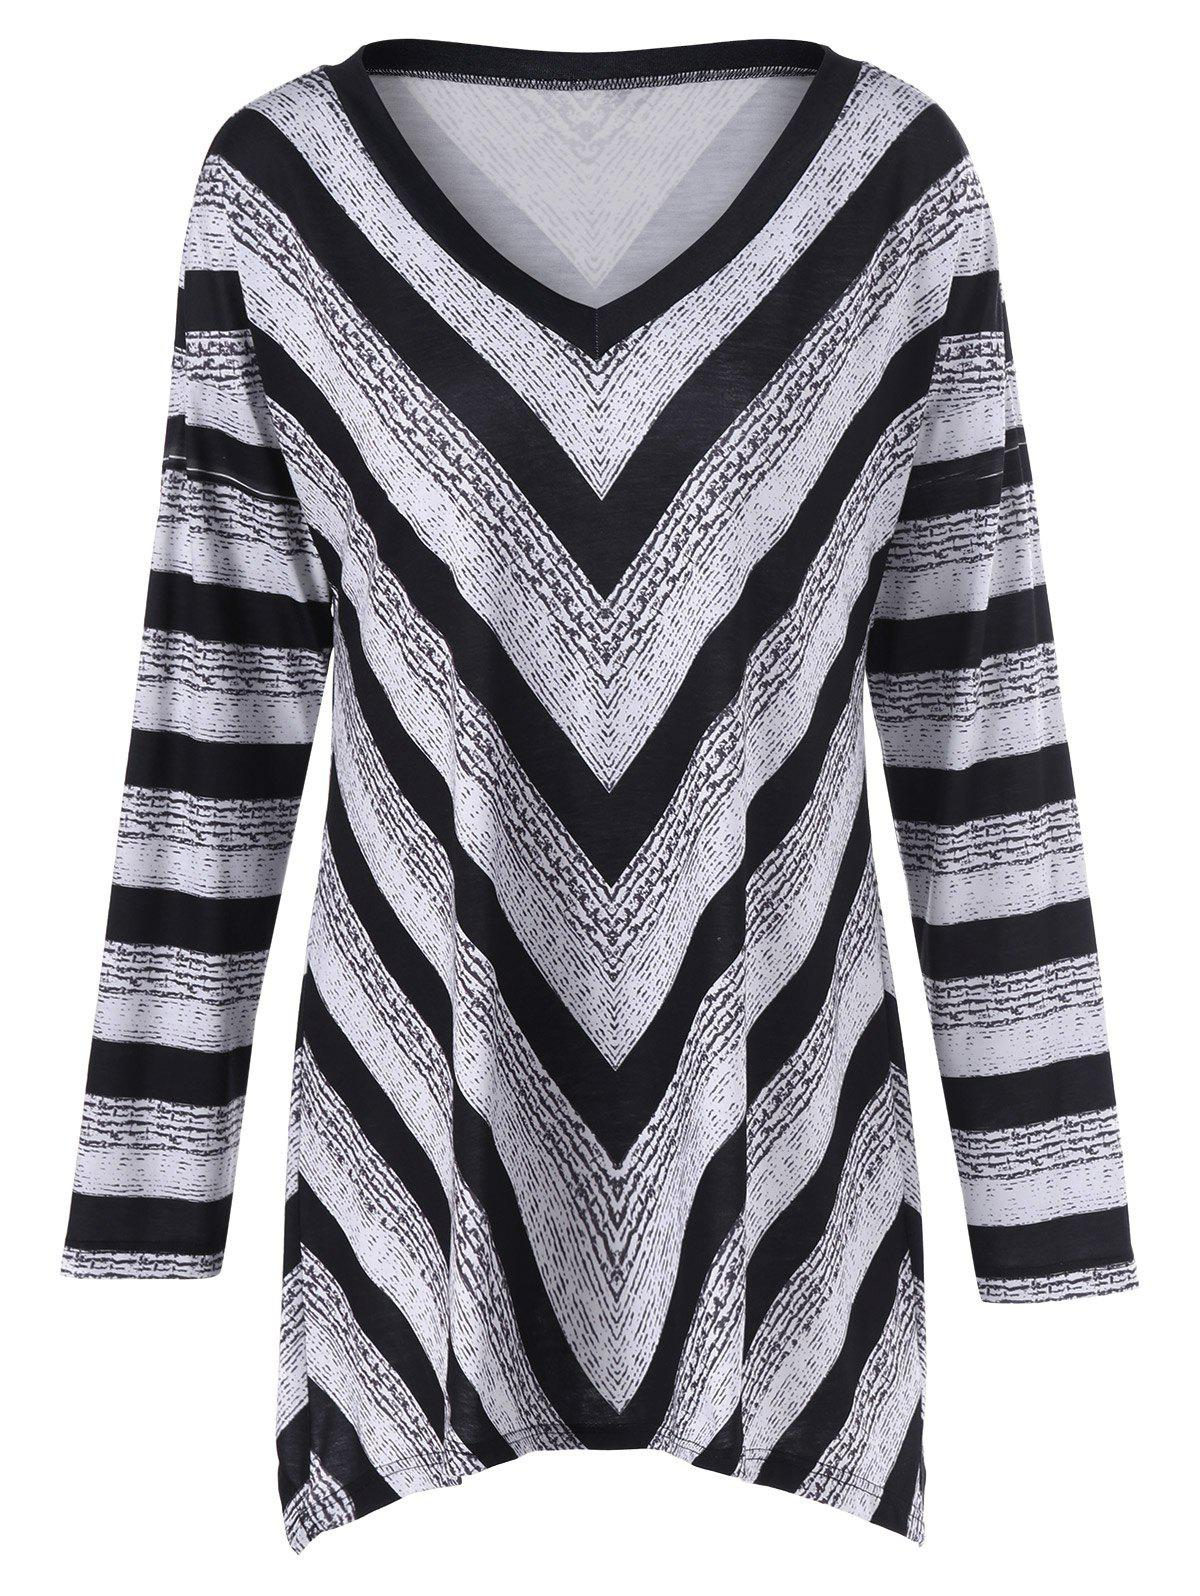 Plus Size Tunic Striped T-Shirt - WHITE/BLACK XL